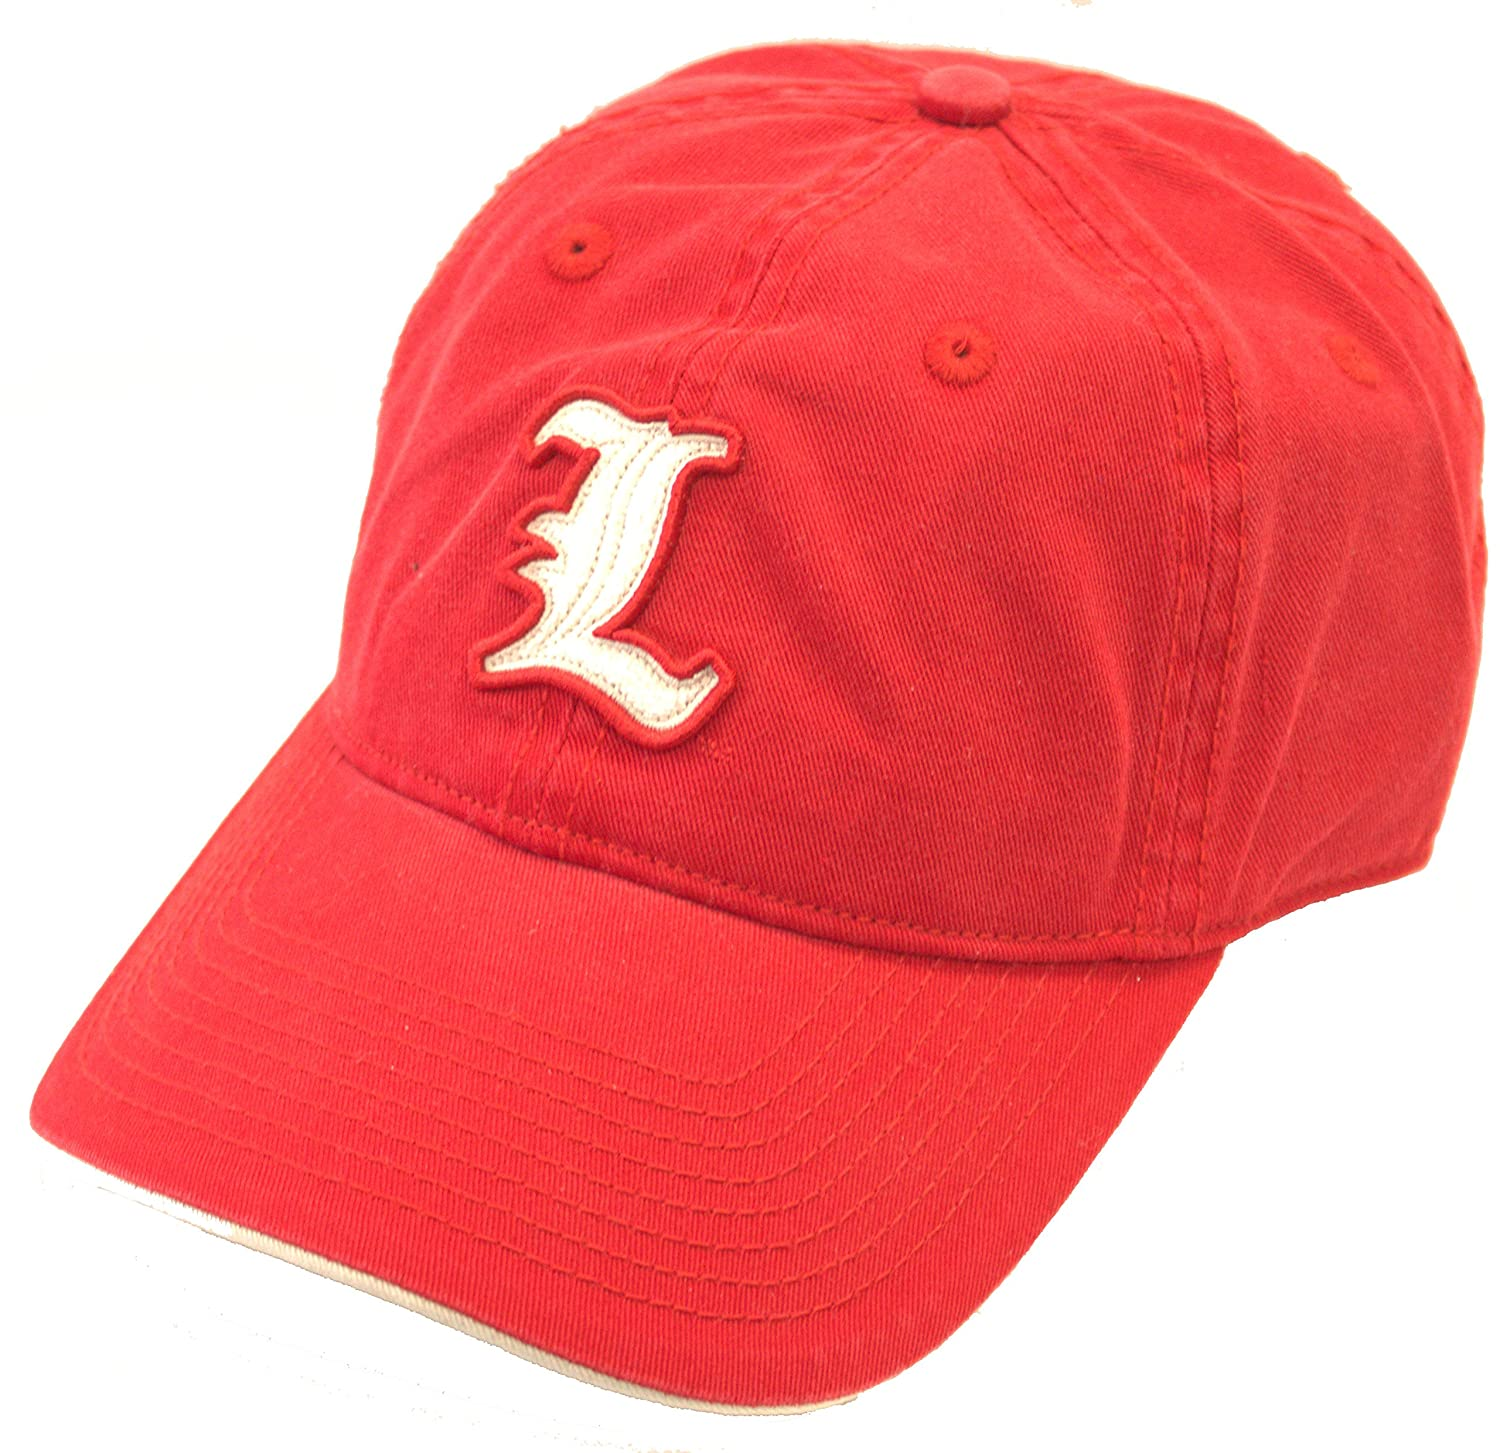 low priced 2ce0d 19506 Amazon.com   NCAA Louisville Cardinals Slouch Air Adjustable Hat   Sports    Outdoors